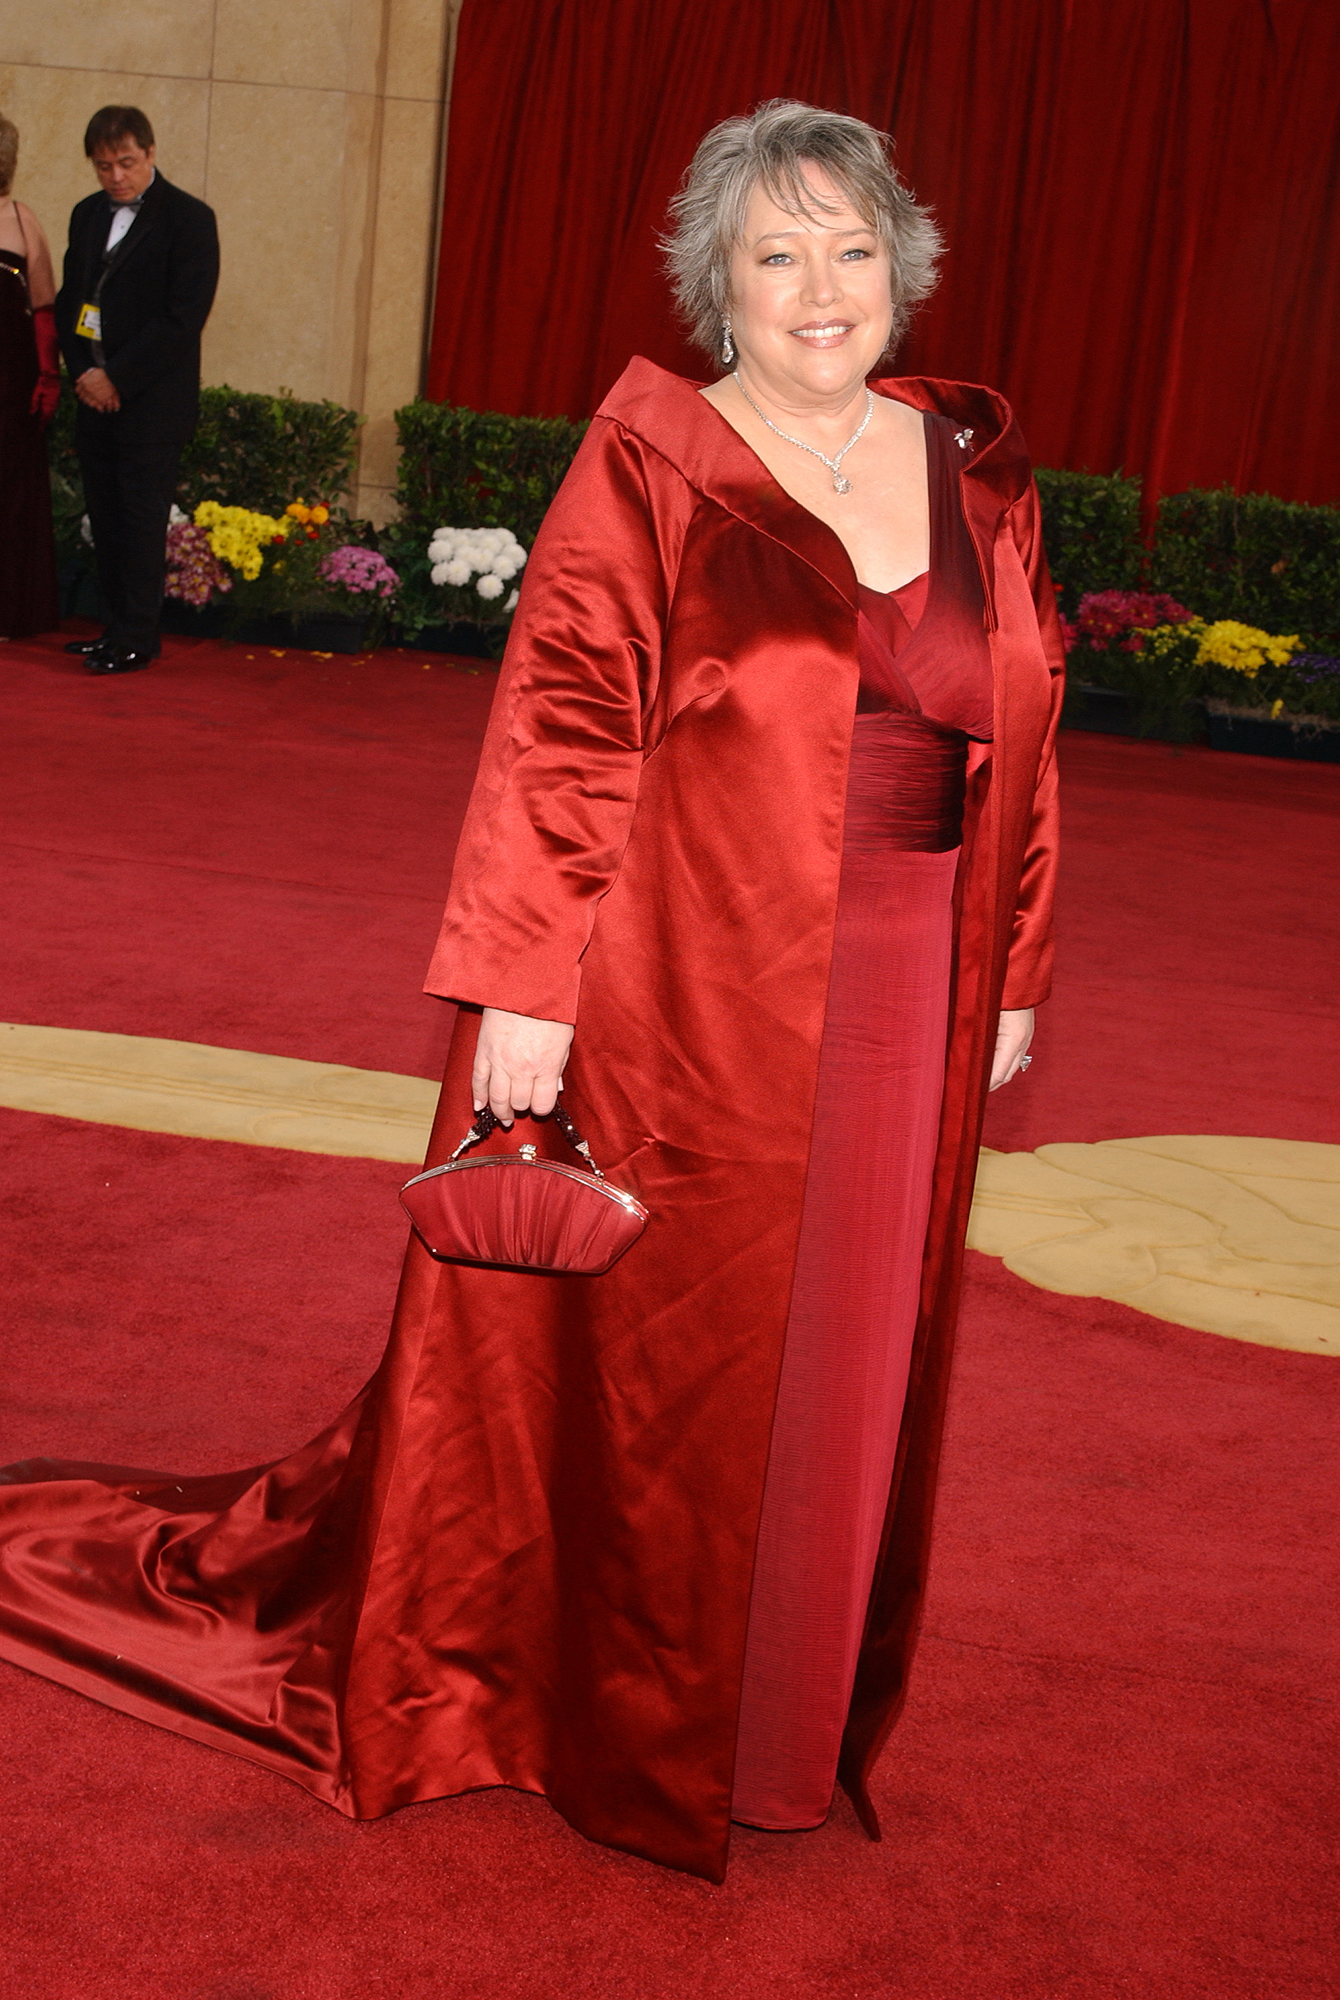 Kathy Bates Is Loving Life 60 Lbs Lighter - Kathy Bates (dress by Eric Gaskins; diamond jewelry by Harry Winston) arriving at the 75th Annual Academy Awards.